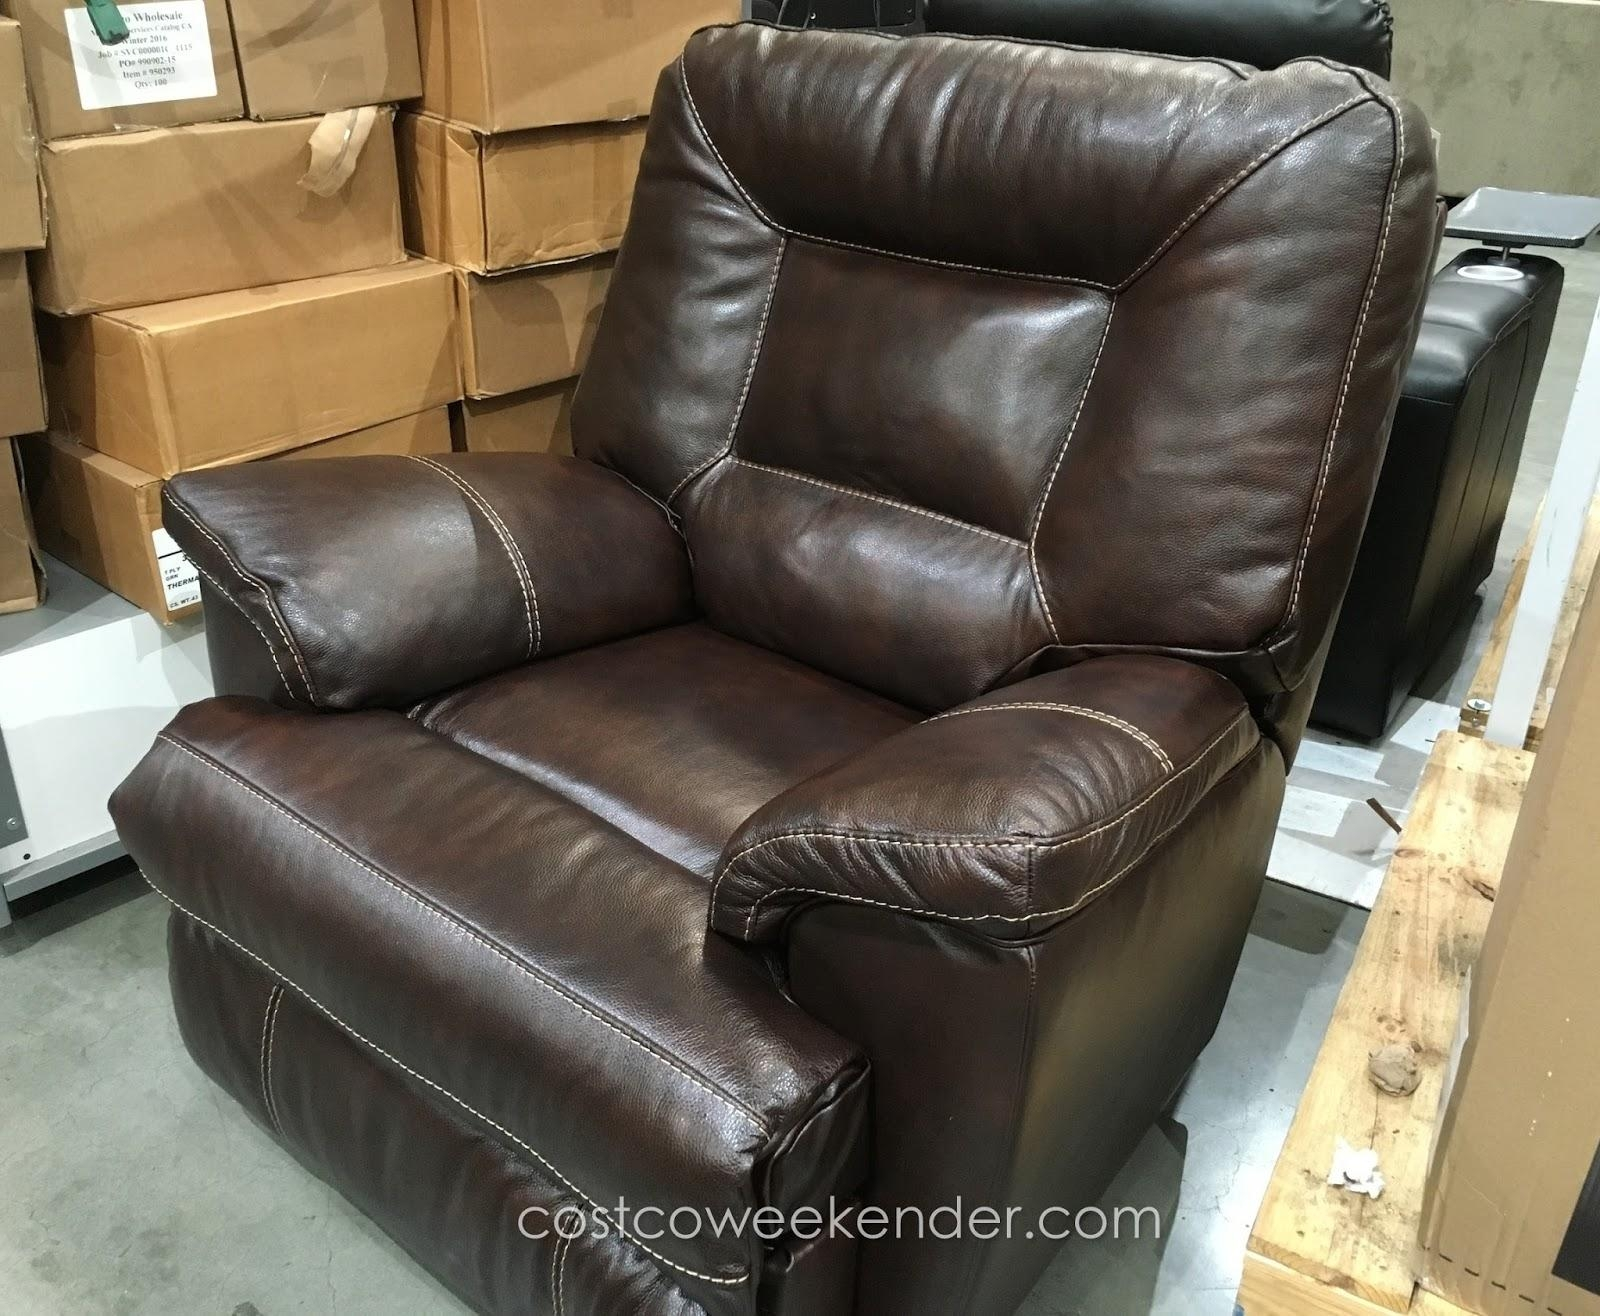 Furniture & Sofa: Enjoy Your Holiday With Costco Home Theater Within Berkline Couches (View 3 of 20)